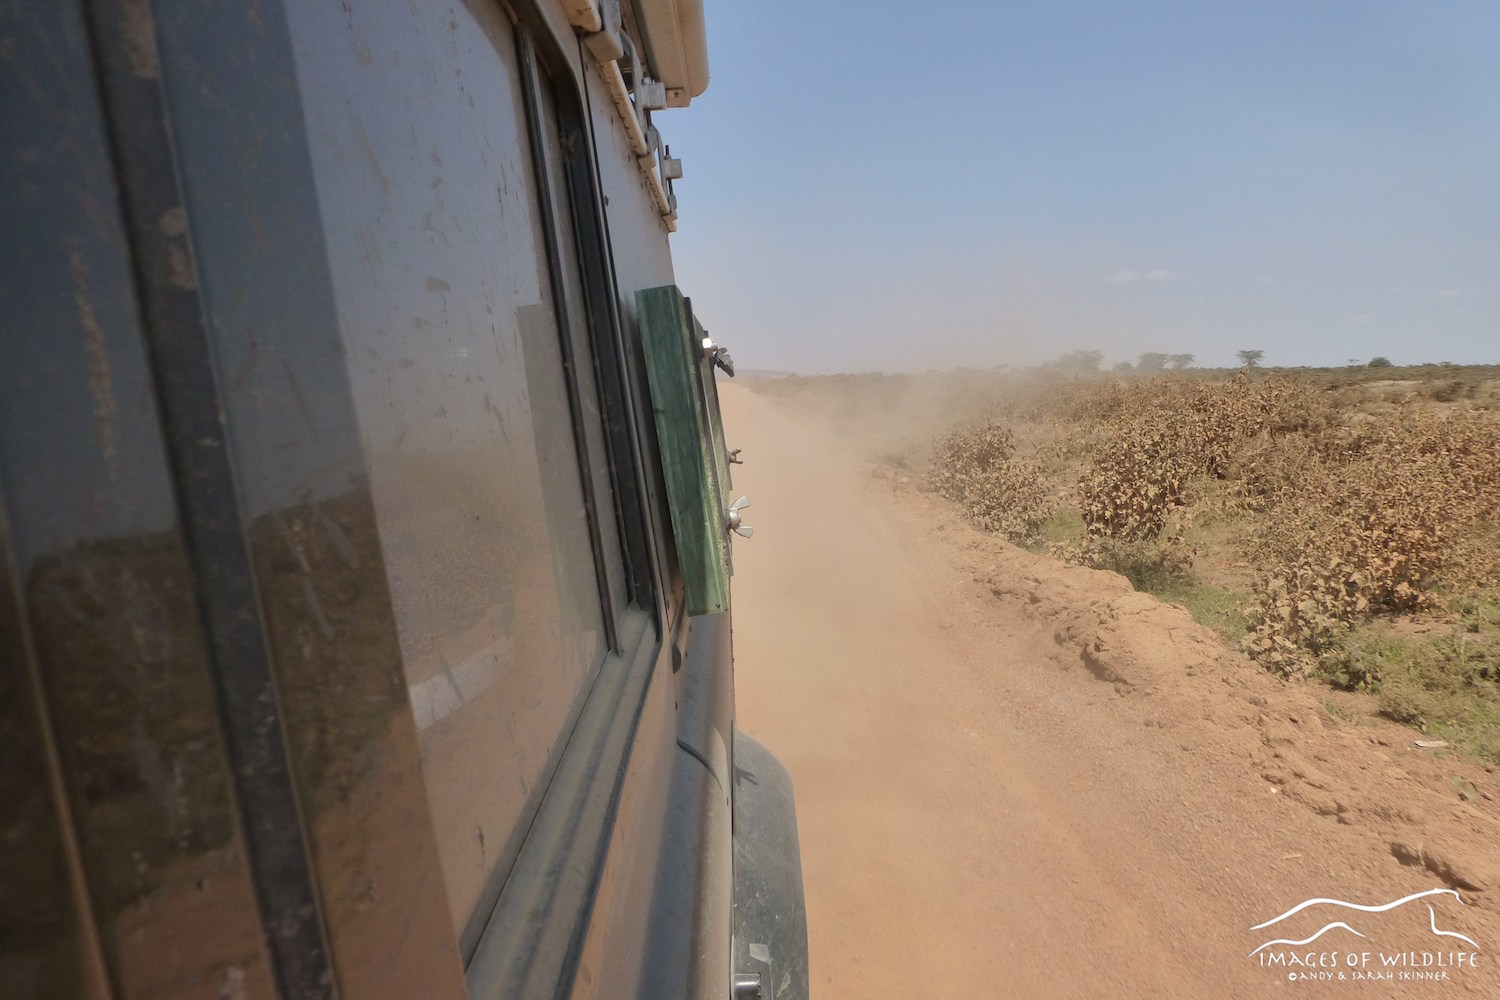 The long and dusty road to the Maasai Mara